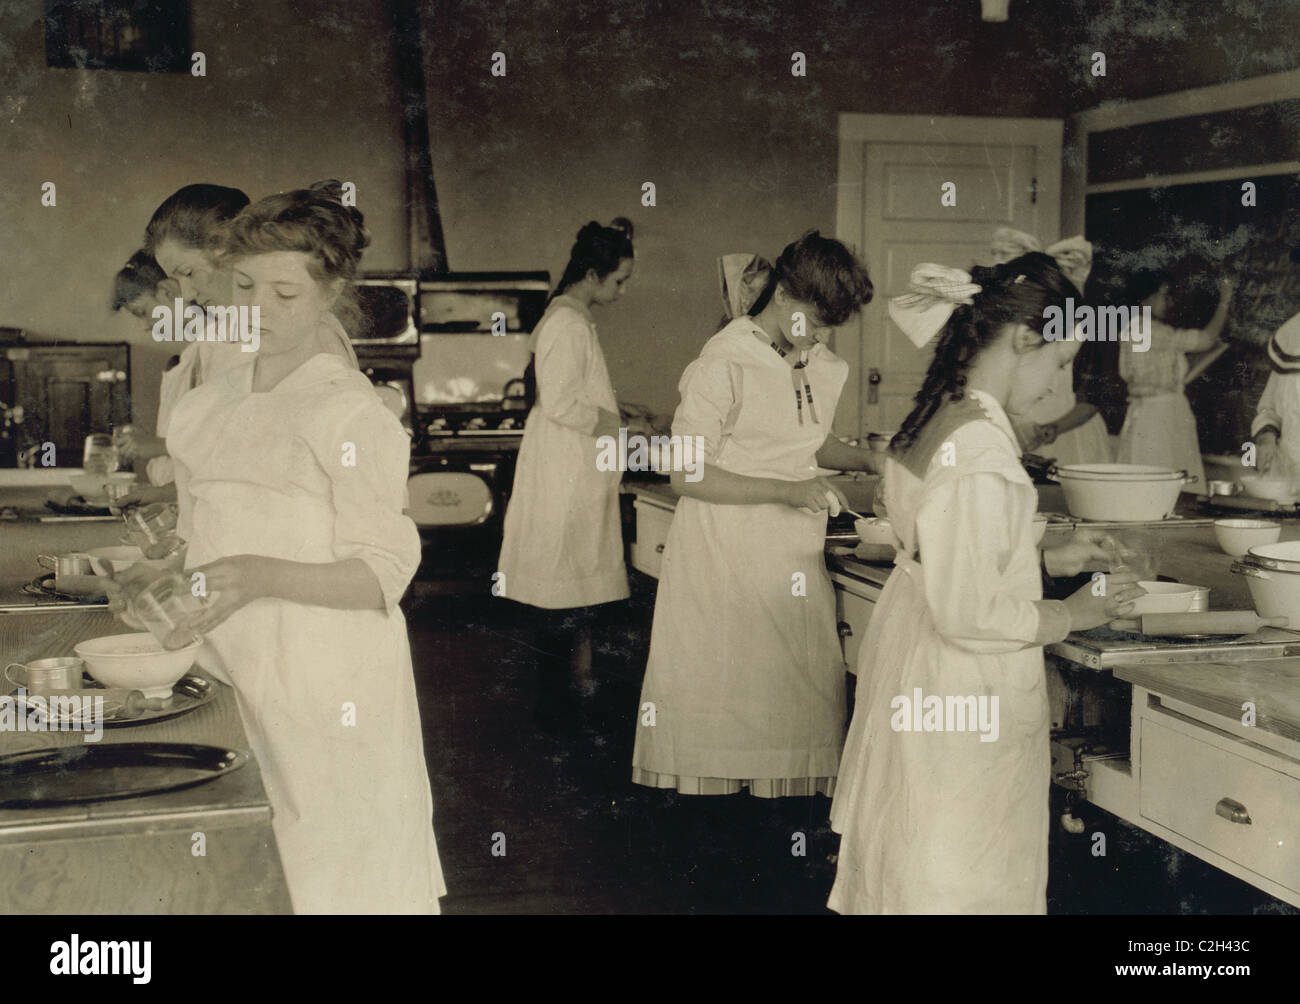 Domestic Science class in Horace Mann School. - Stock Image